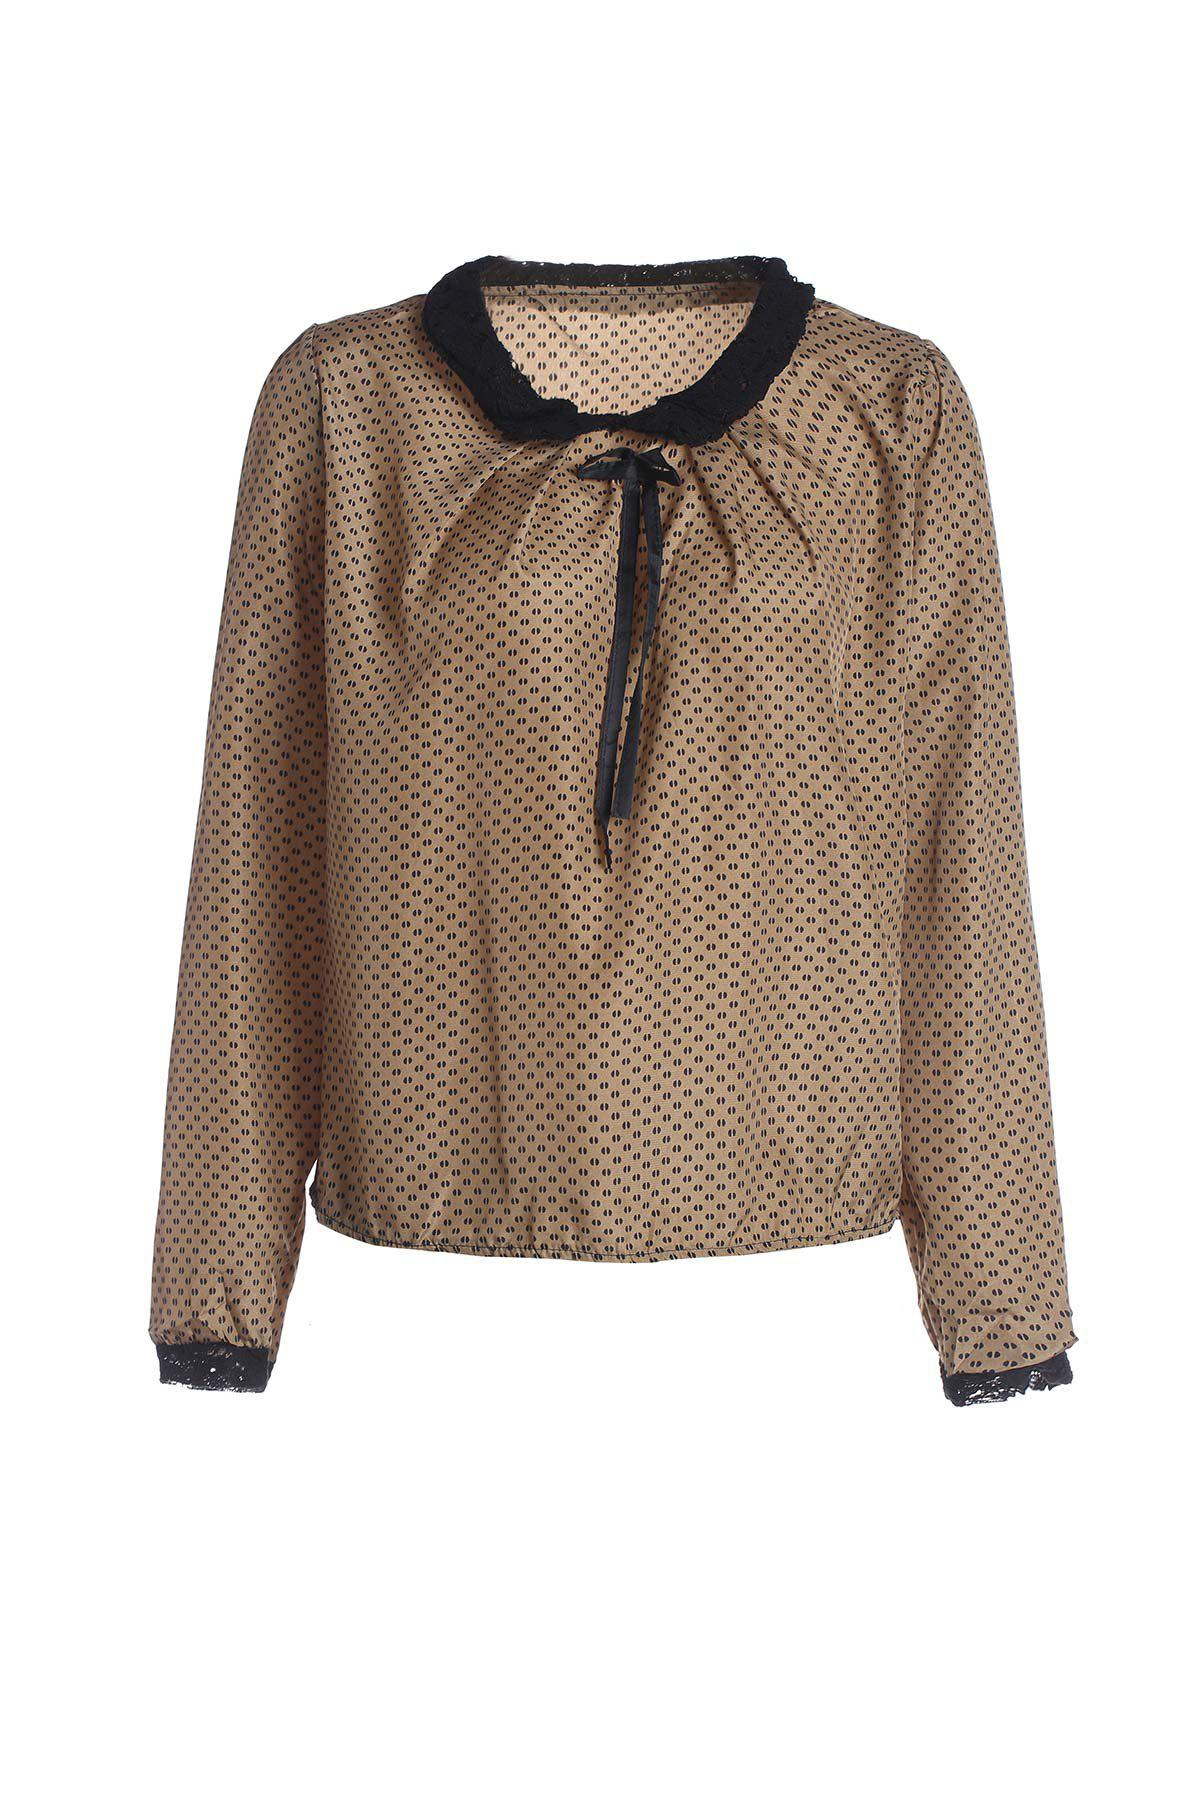 Double Lace With Belt Collar Polka Dot Deisgn Long Sleeves Blended Women's Blouse - COFFEE ONE SIZE(FIT SIZE XS TO M)